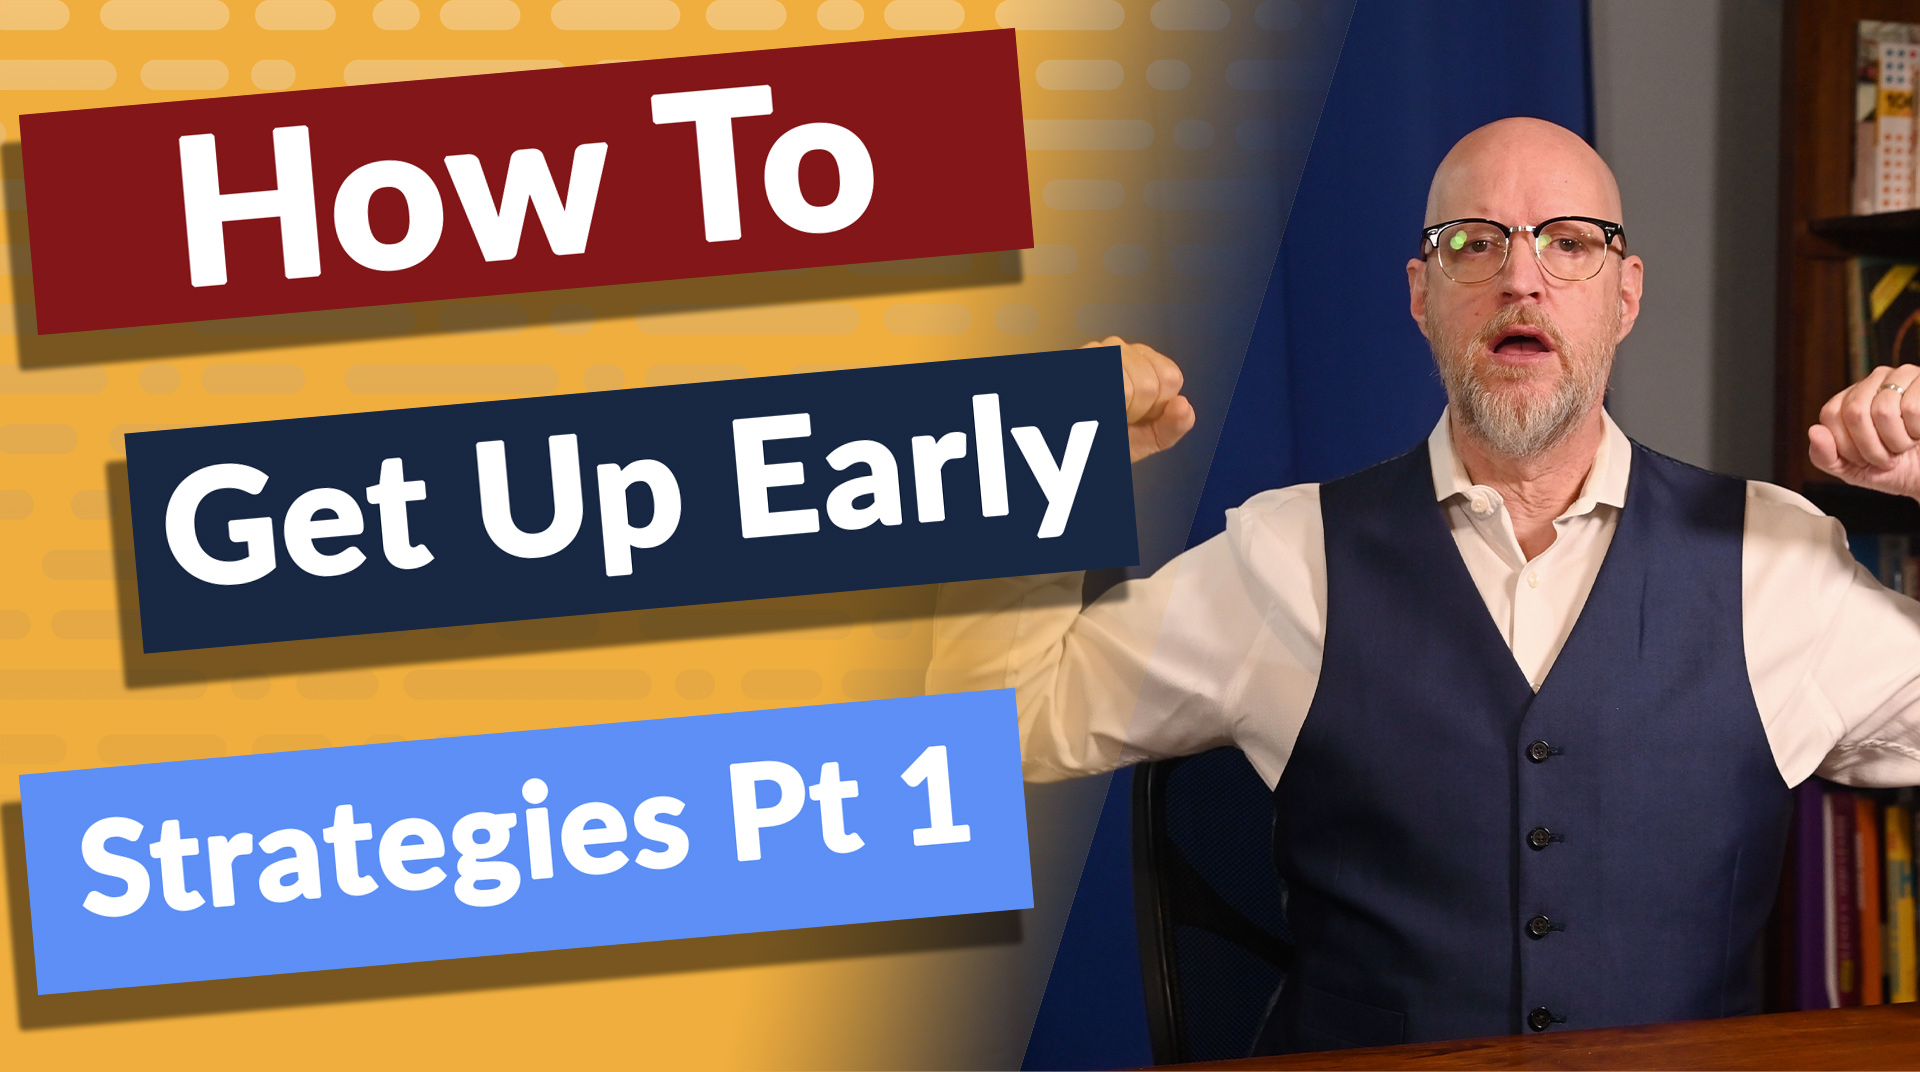 Getting up in the morning is just one way to apply this week's distinction. Here are three ways to get up easier in the morning and why it's important.